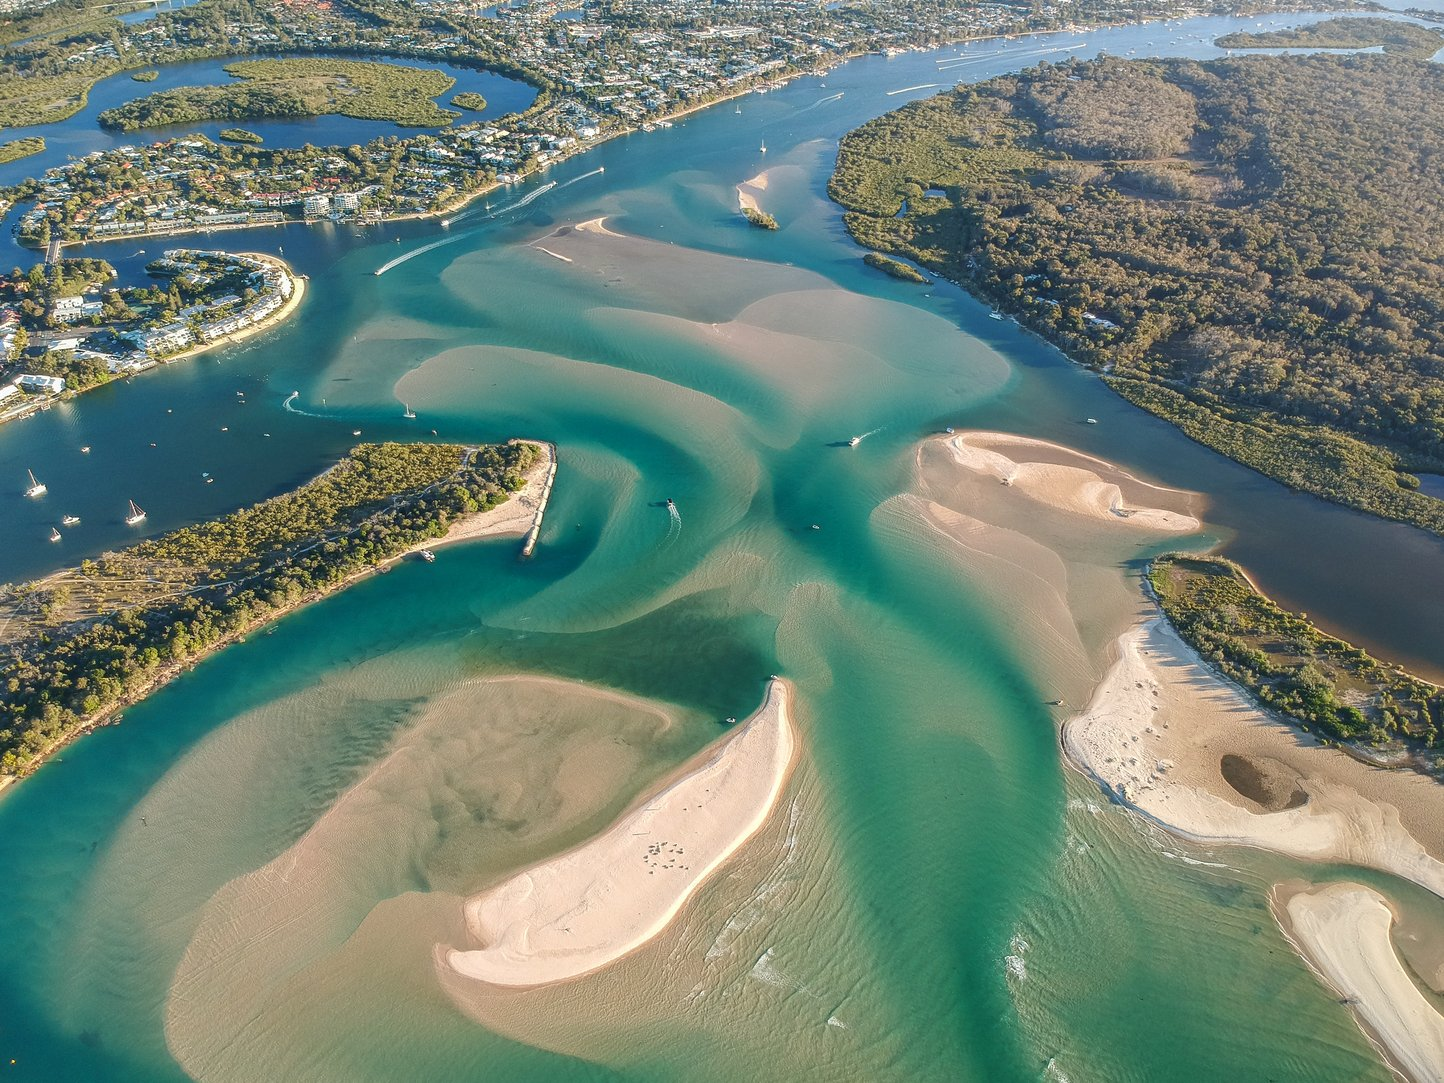 10 Best Fishing Spots in Australia - The Complete Guide